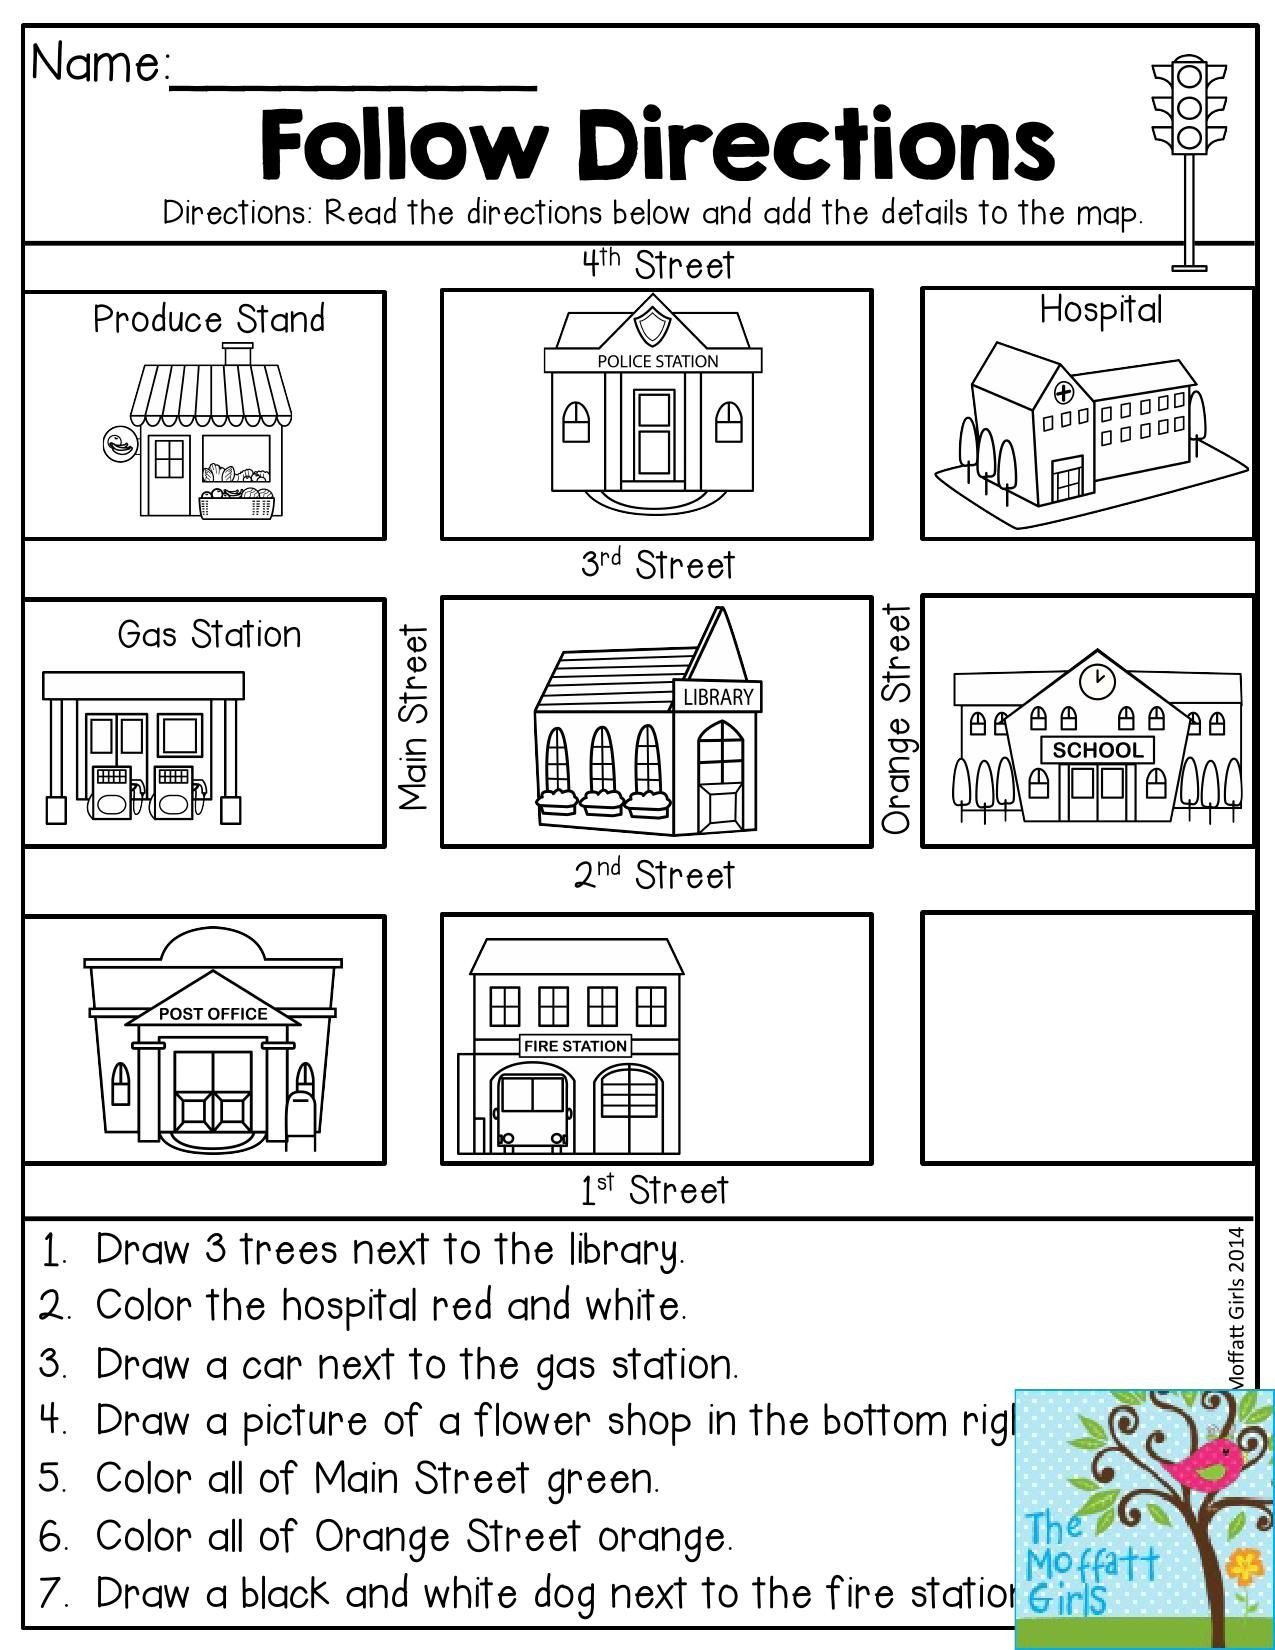 Map Skills Worksheet 2nd Grade Follow Directions Read the Directions and Add the Details